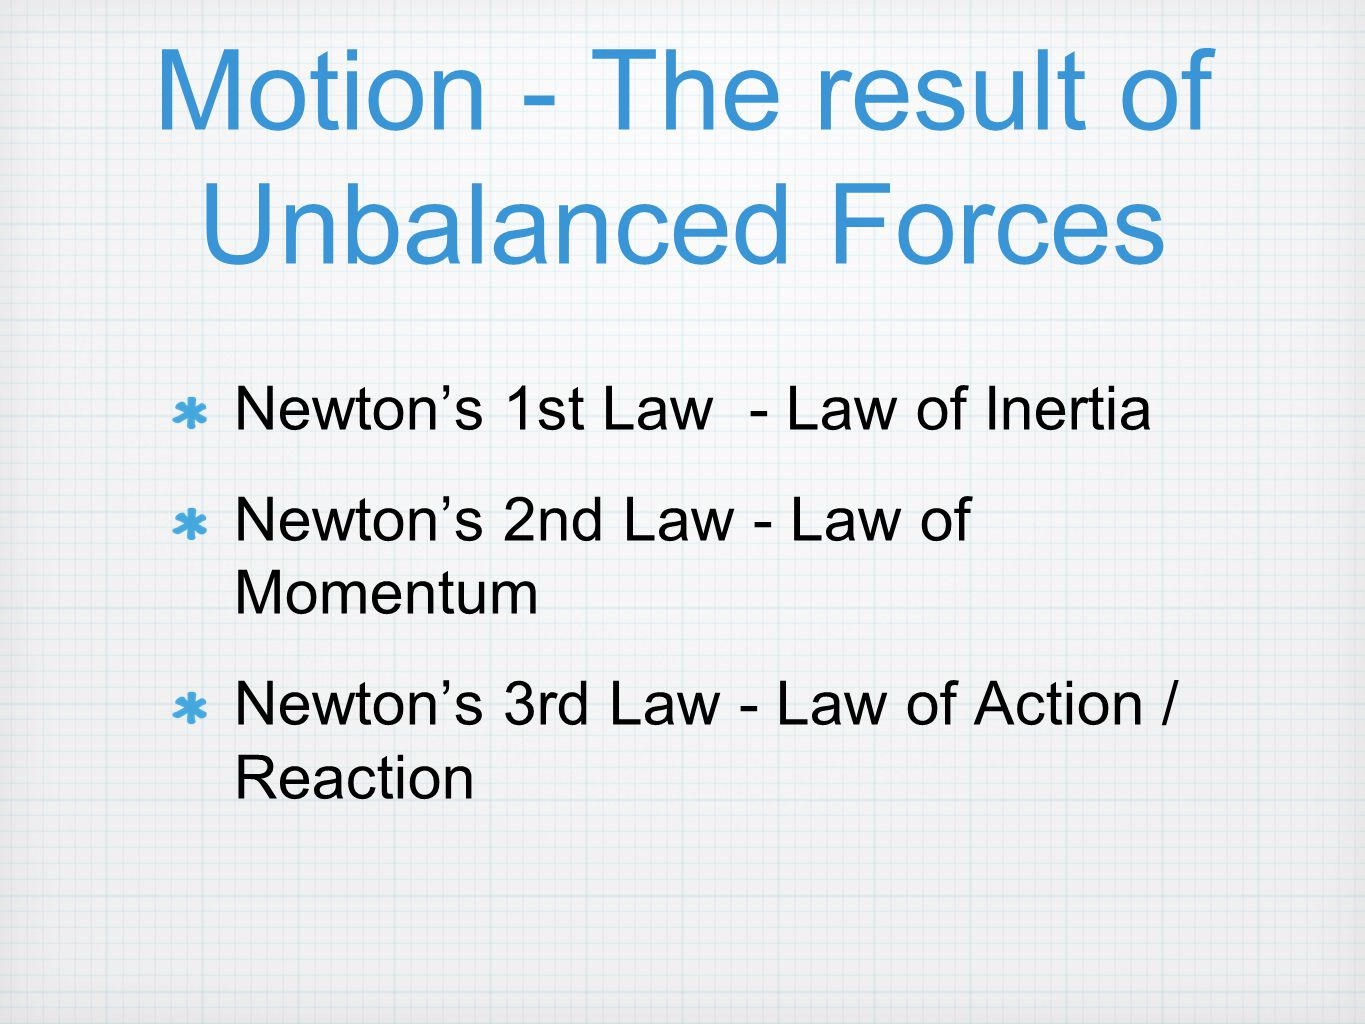 Motion - The result of Unbalanced Forces